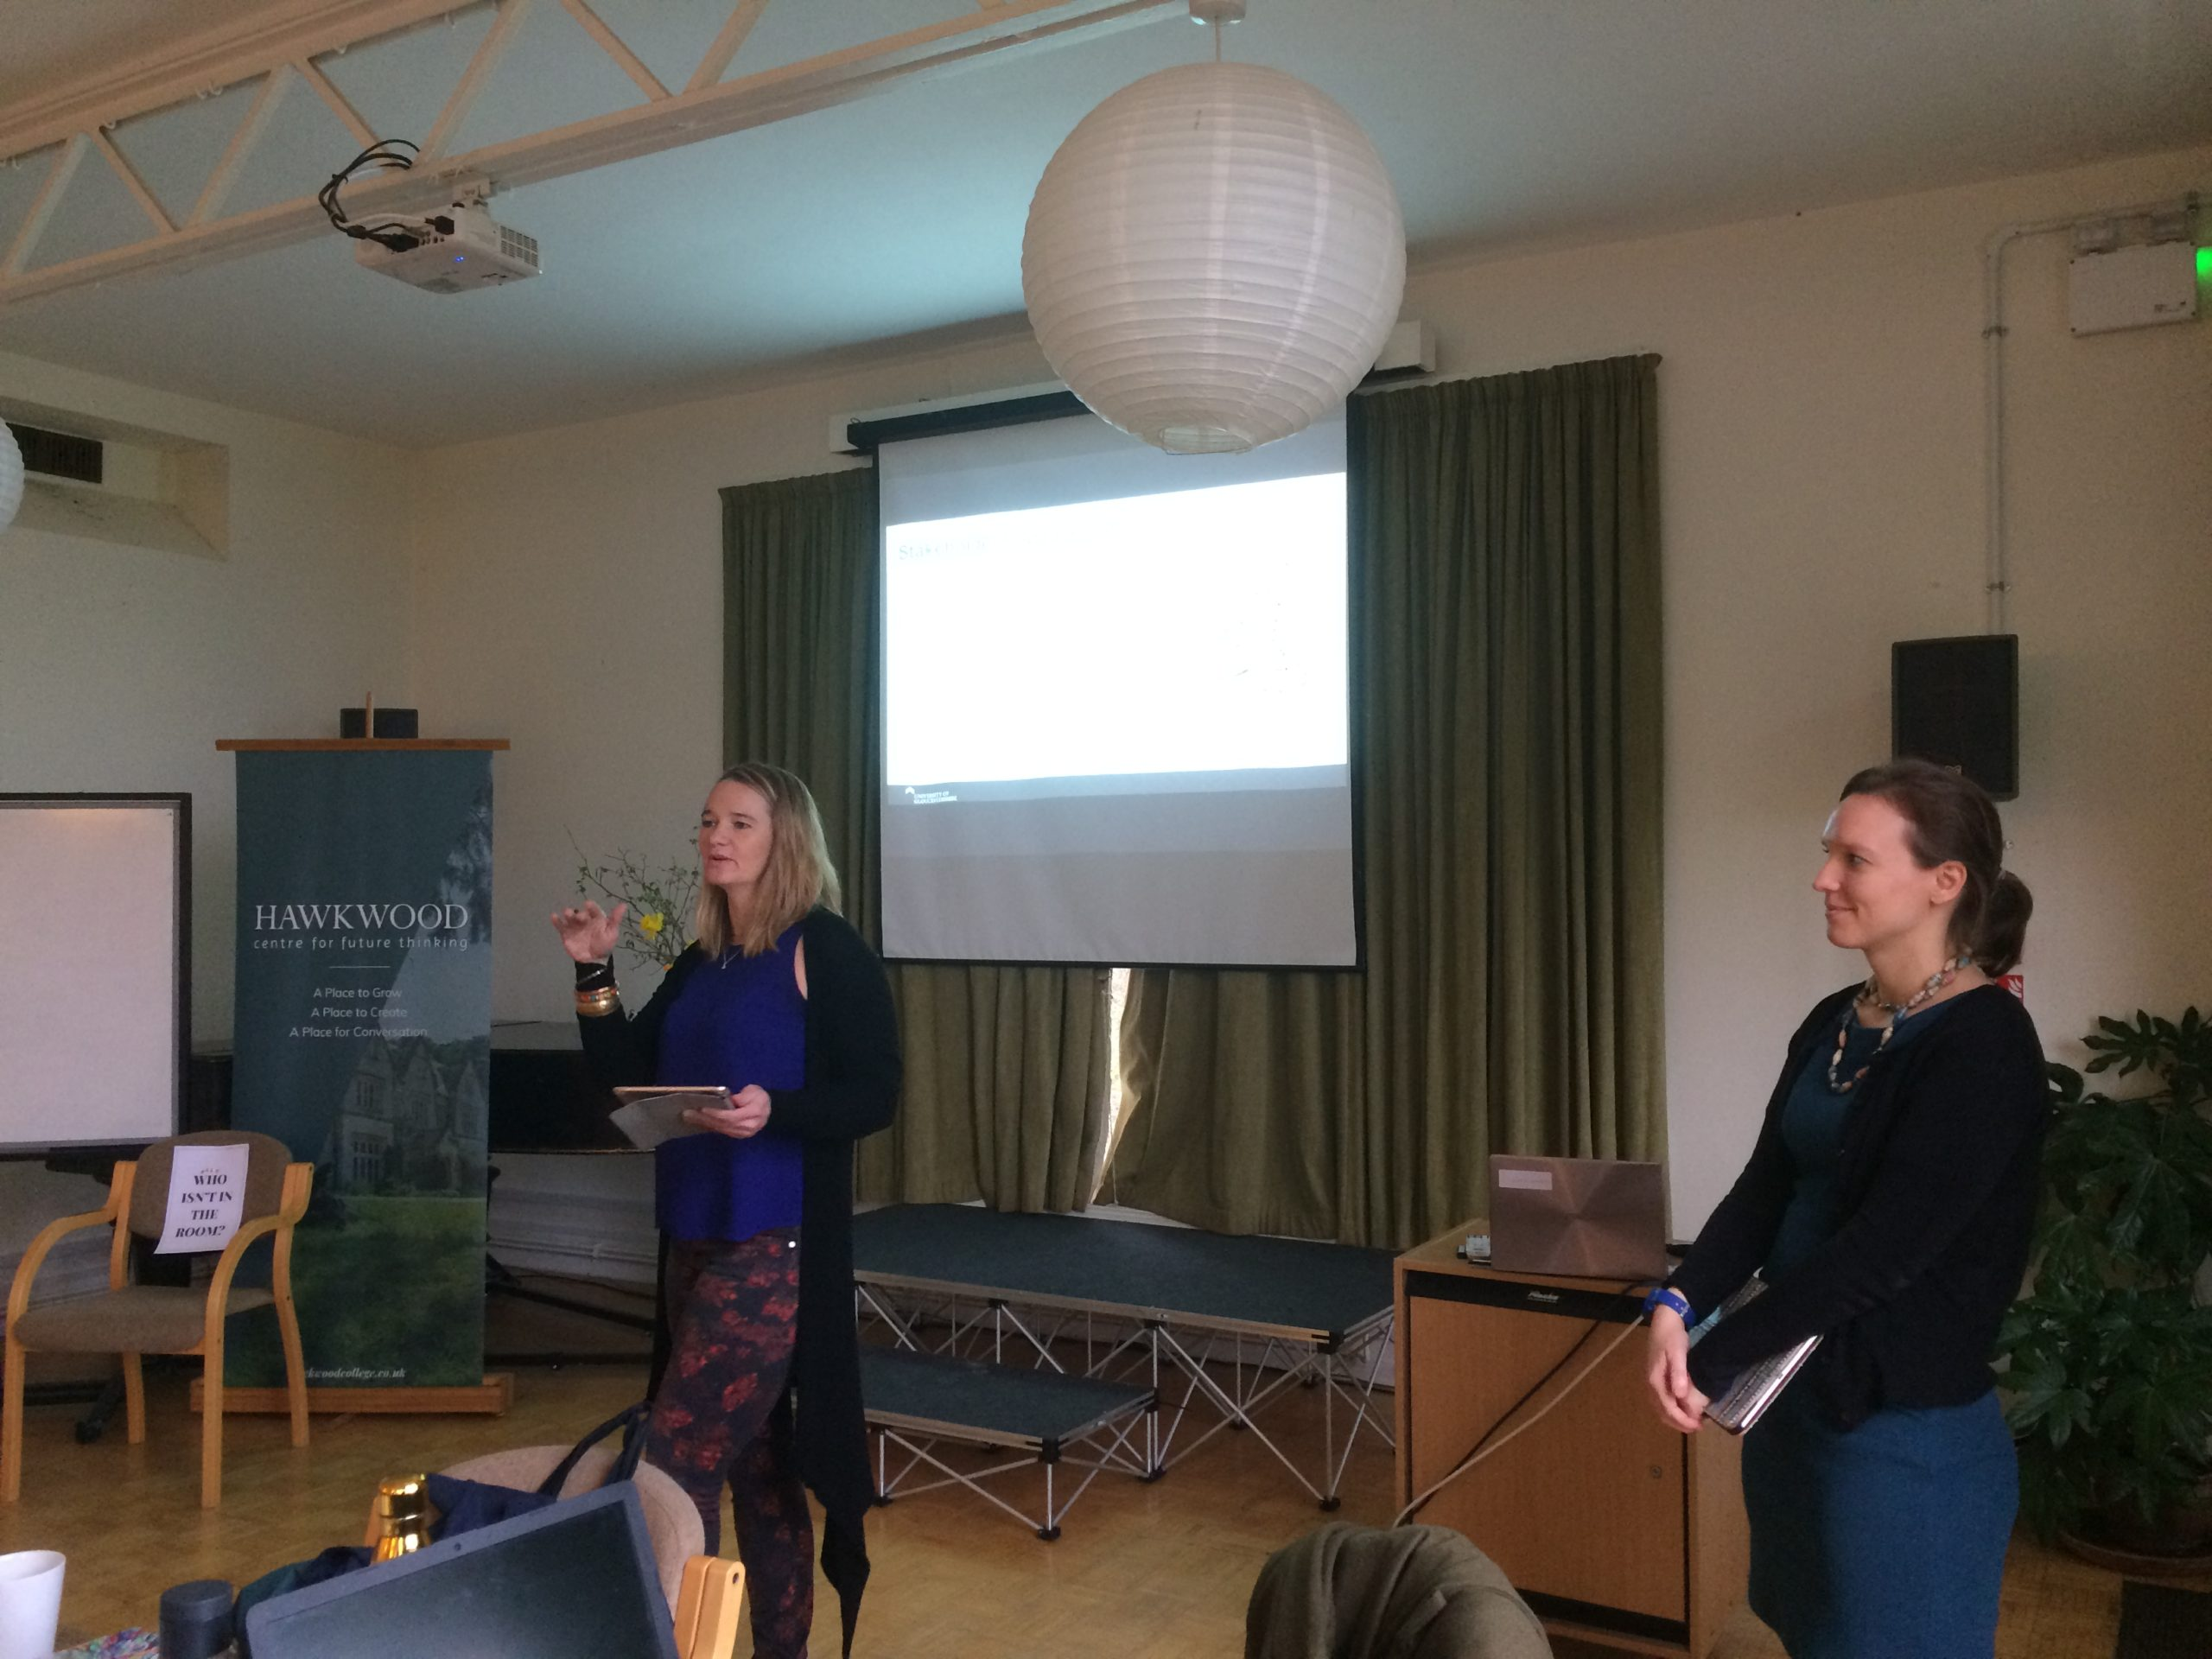 Yolande and Miriam presenting at the Hawkwood Climate Change lab